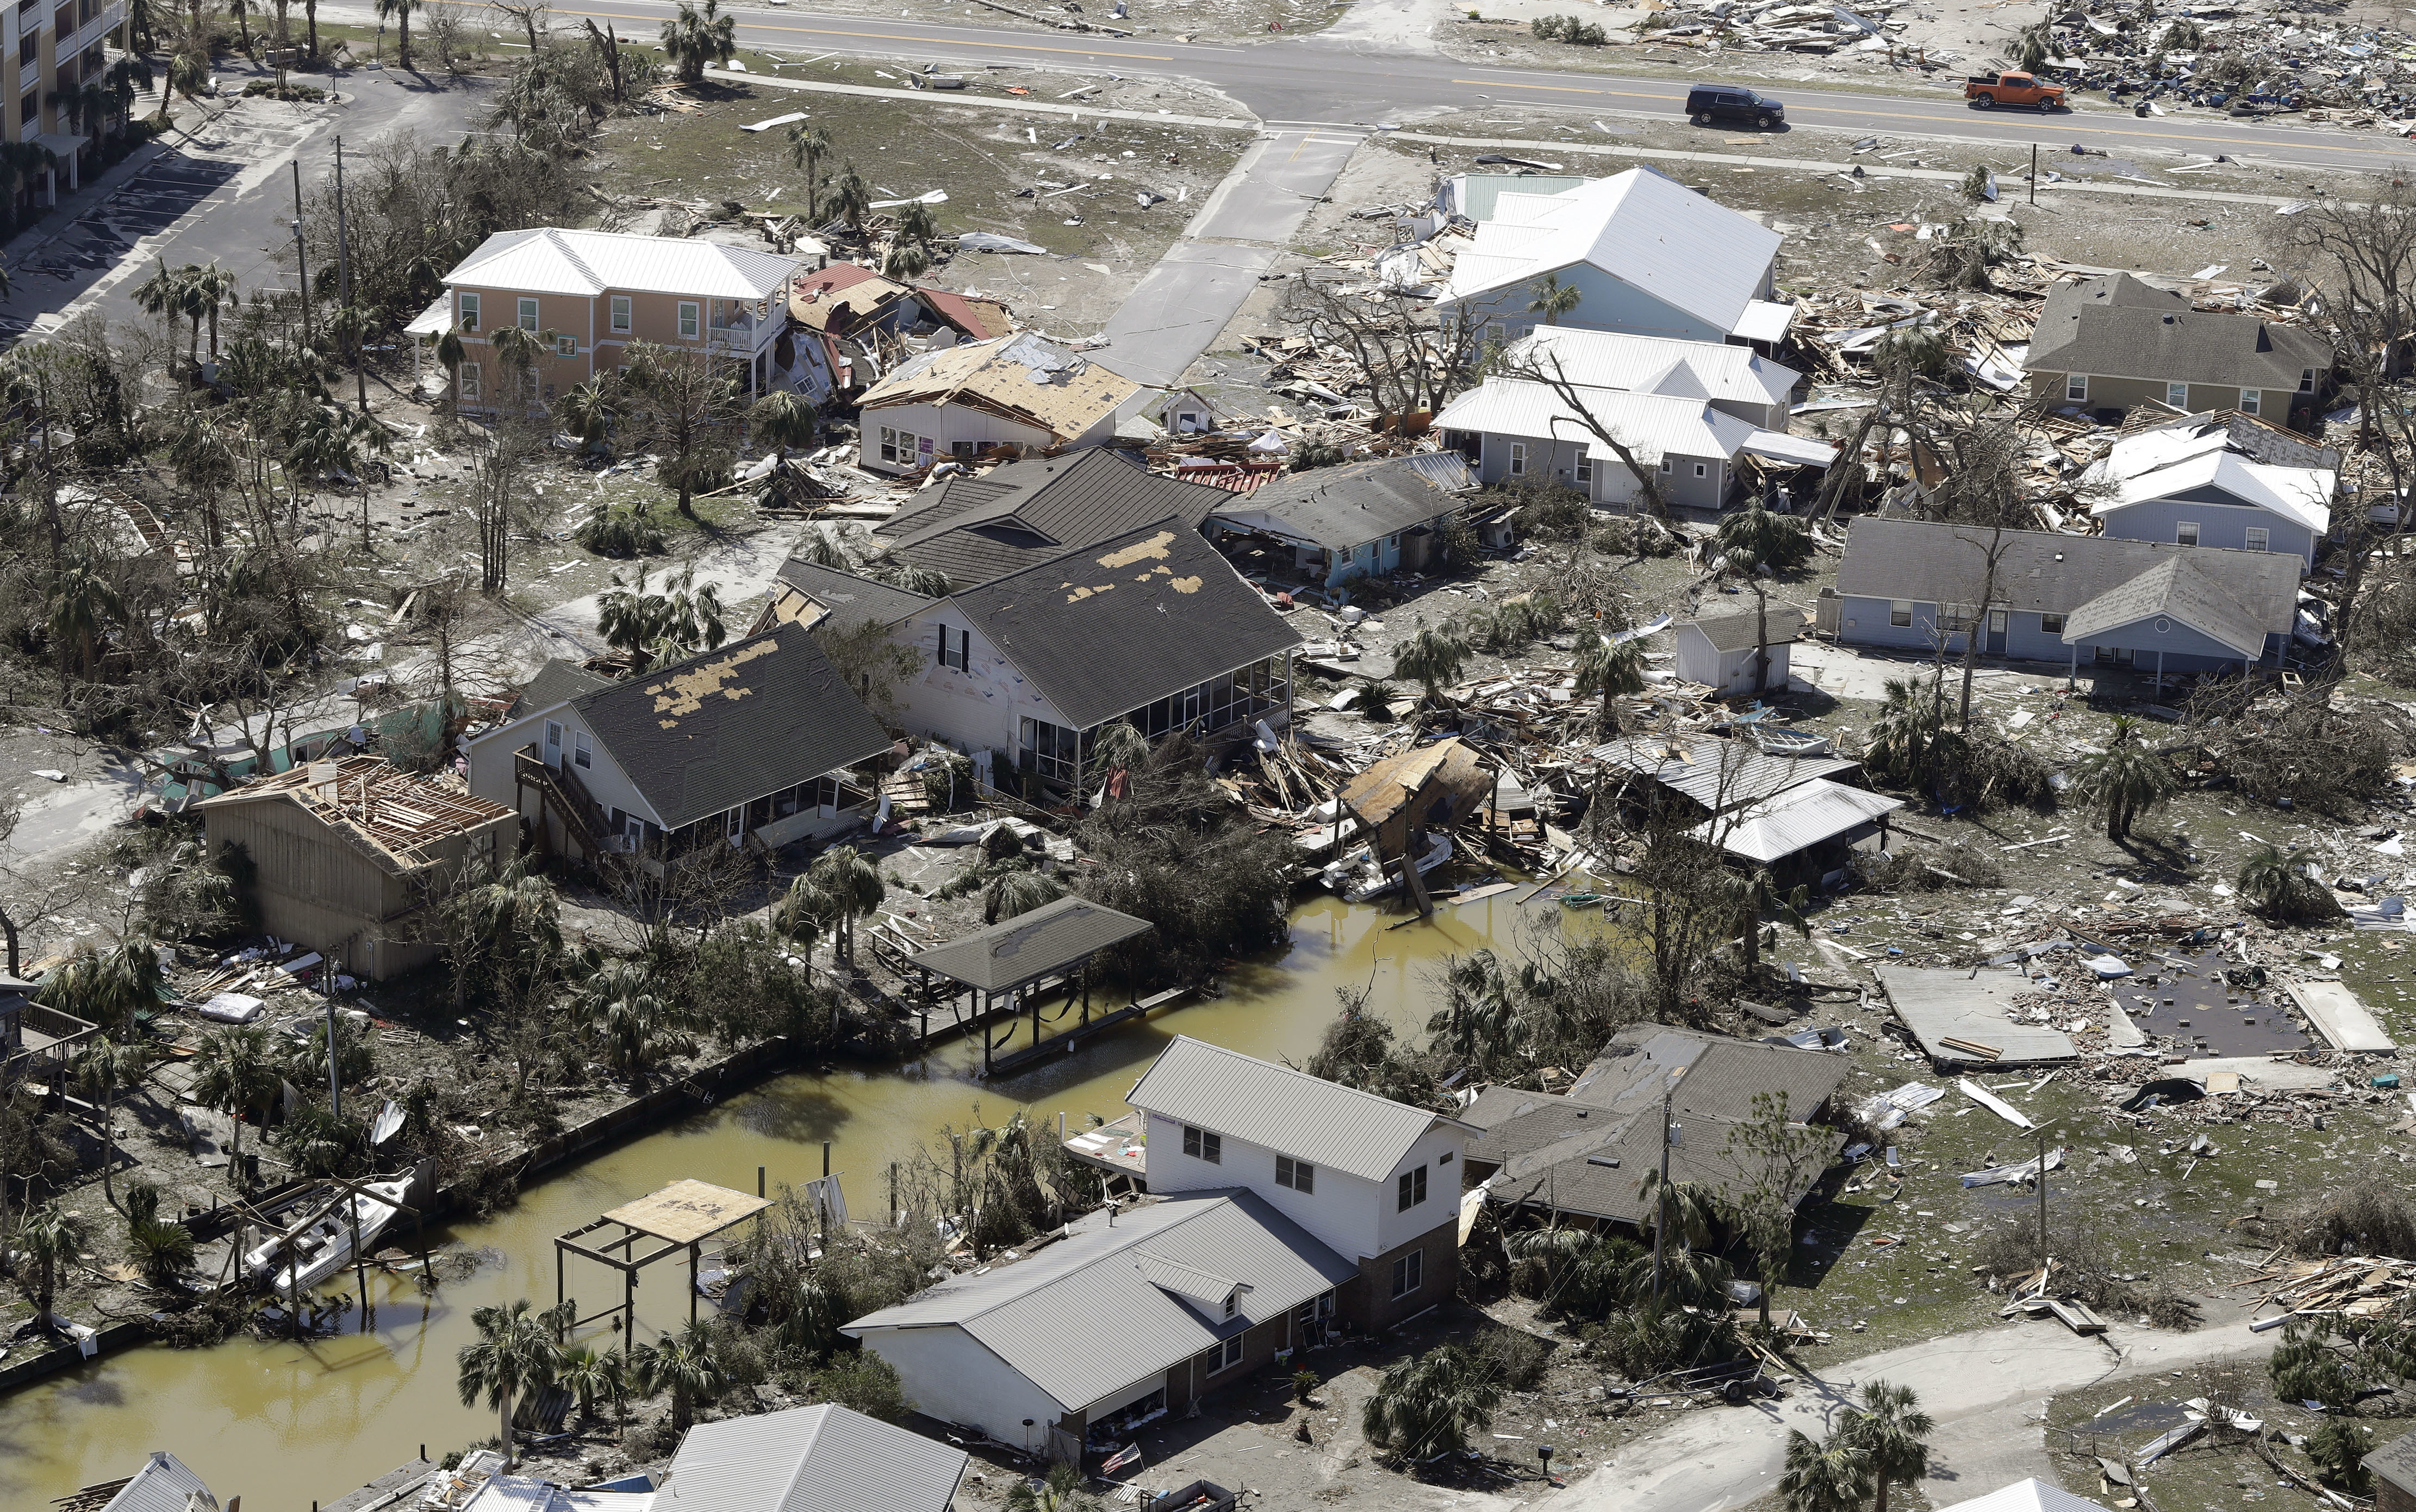 Debris from homes destroyed by Hurricane Michael litters the ground on October 11, 2018, in Mexico Beach, Florida. The hurricane hit the panhandle area with Category 4 winds, causing major damage. (Photo by Chris O'Meara/Getty Images)